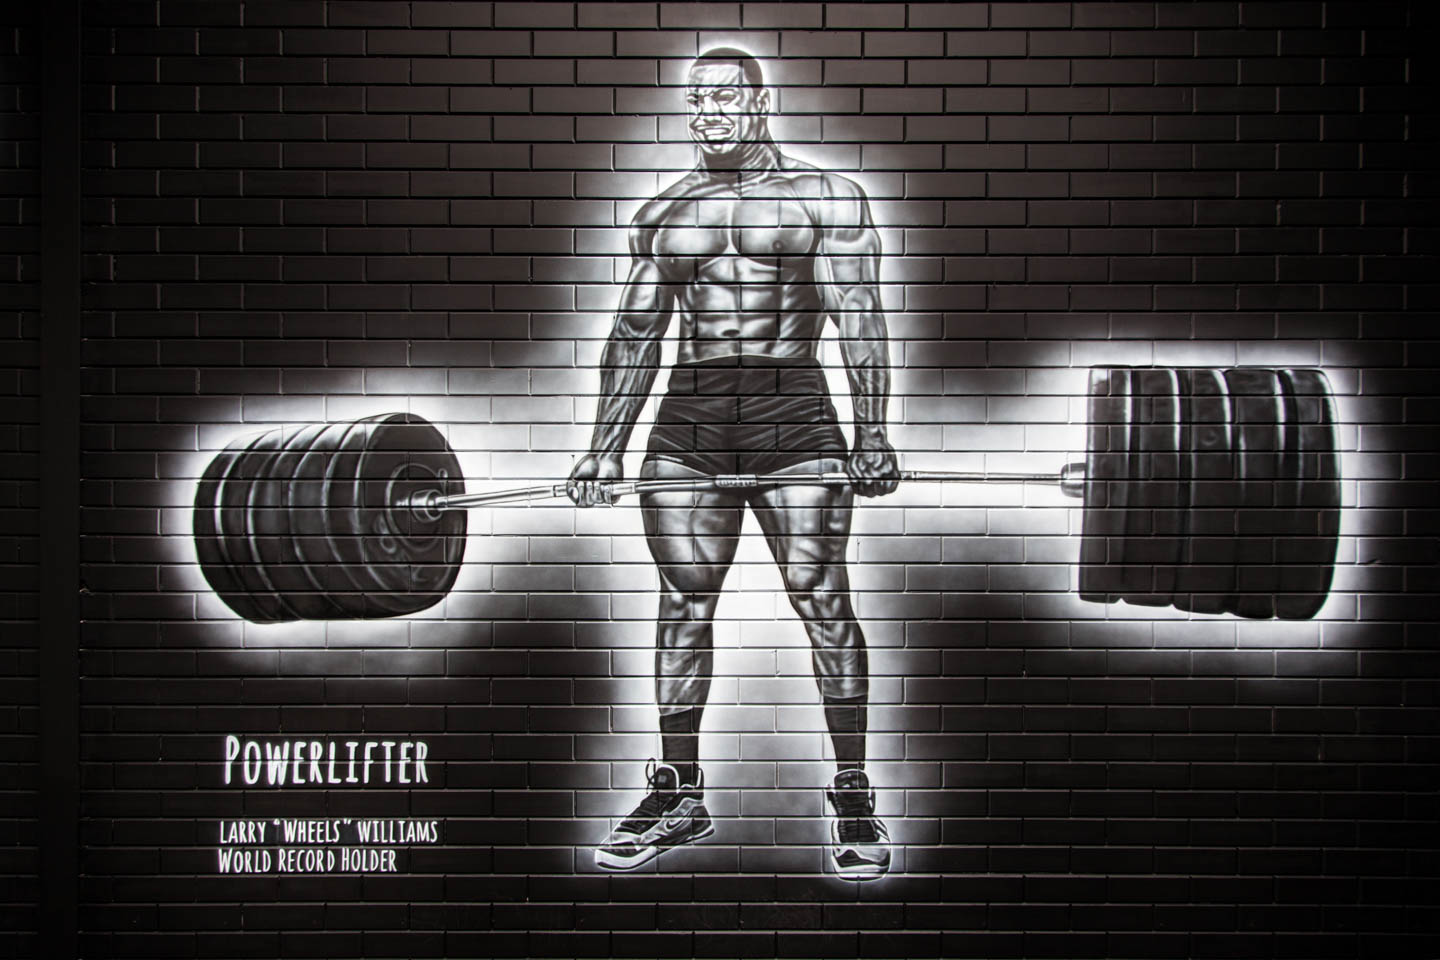 Powerlifter Larry Wheels Williams. Krachtsporters muurschildering Life Power Base